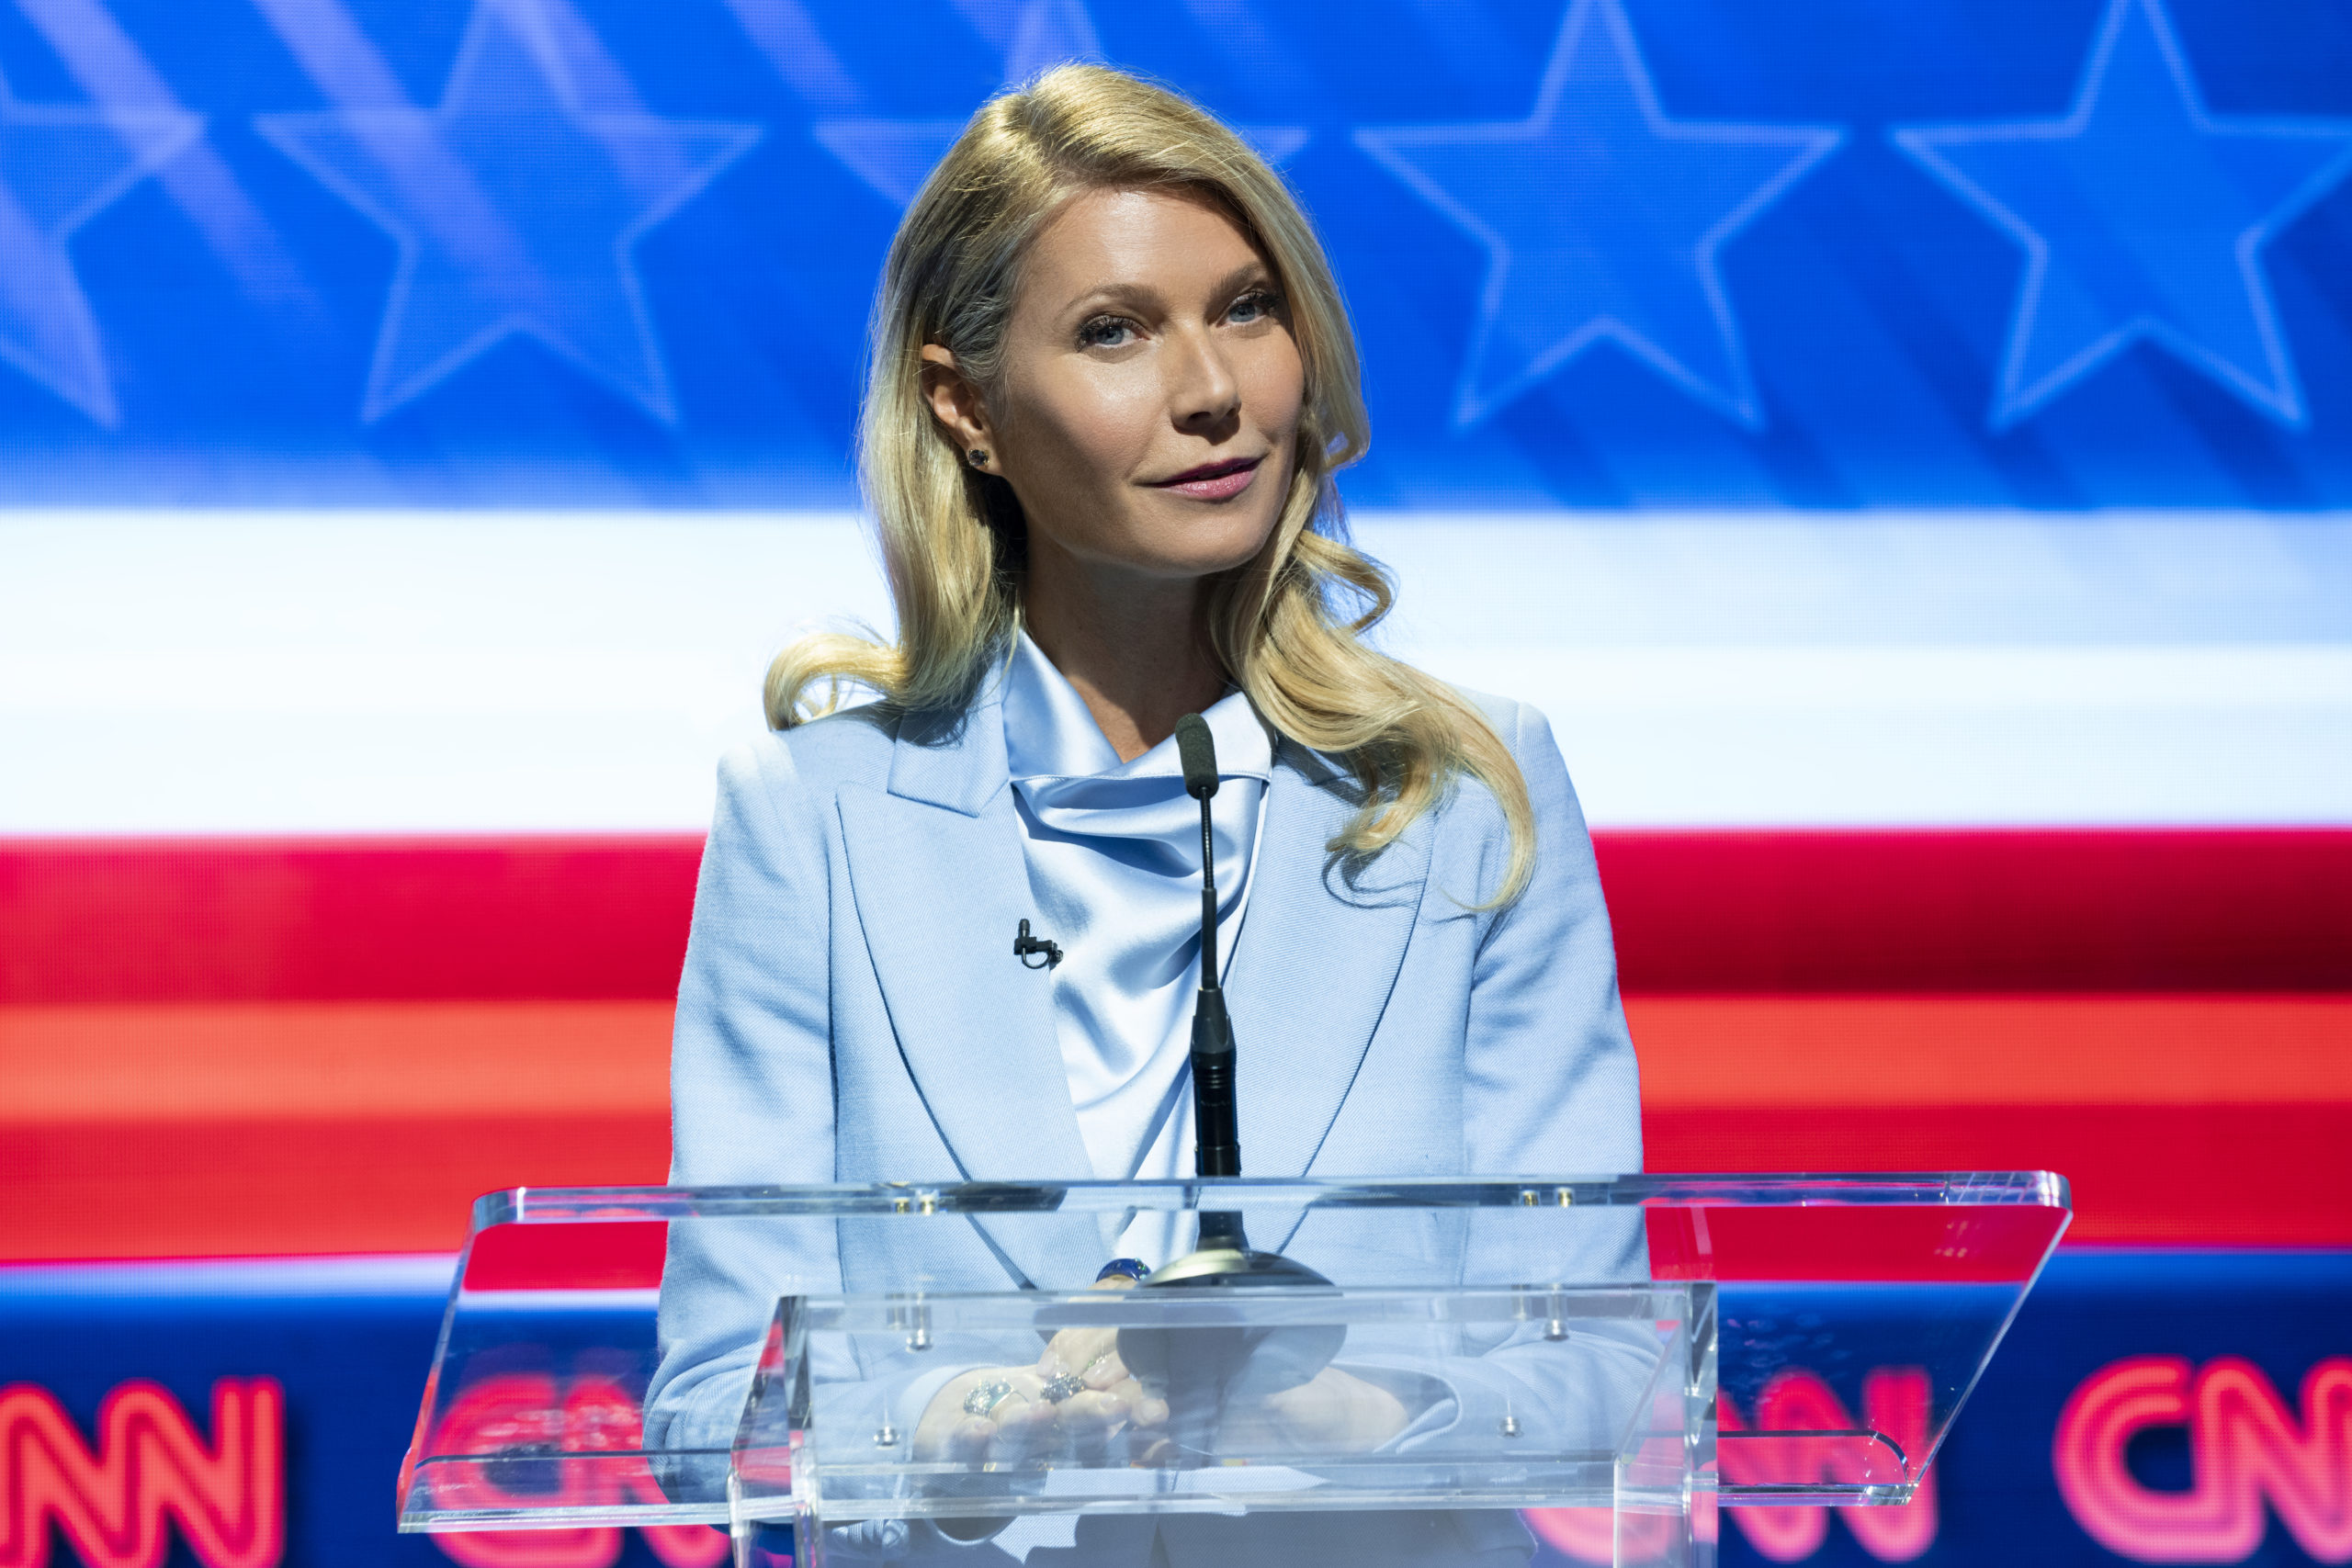 Gwyneth Paltrow in The Politician season 2 (NICOLE RIVELLI/NETFLIX)